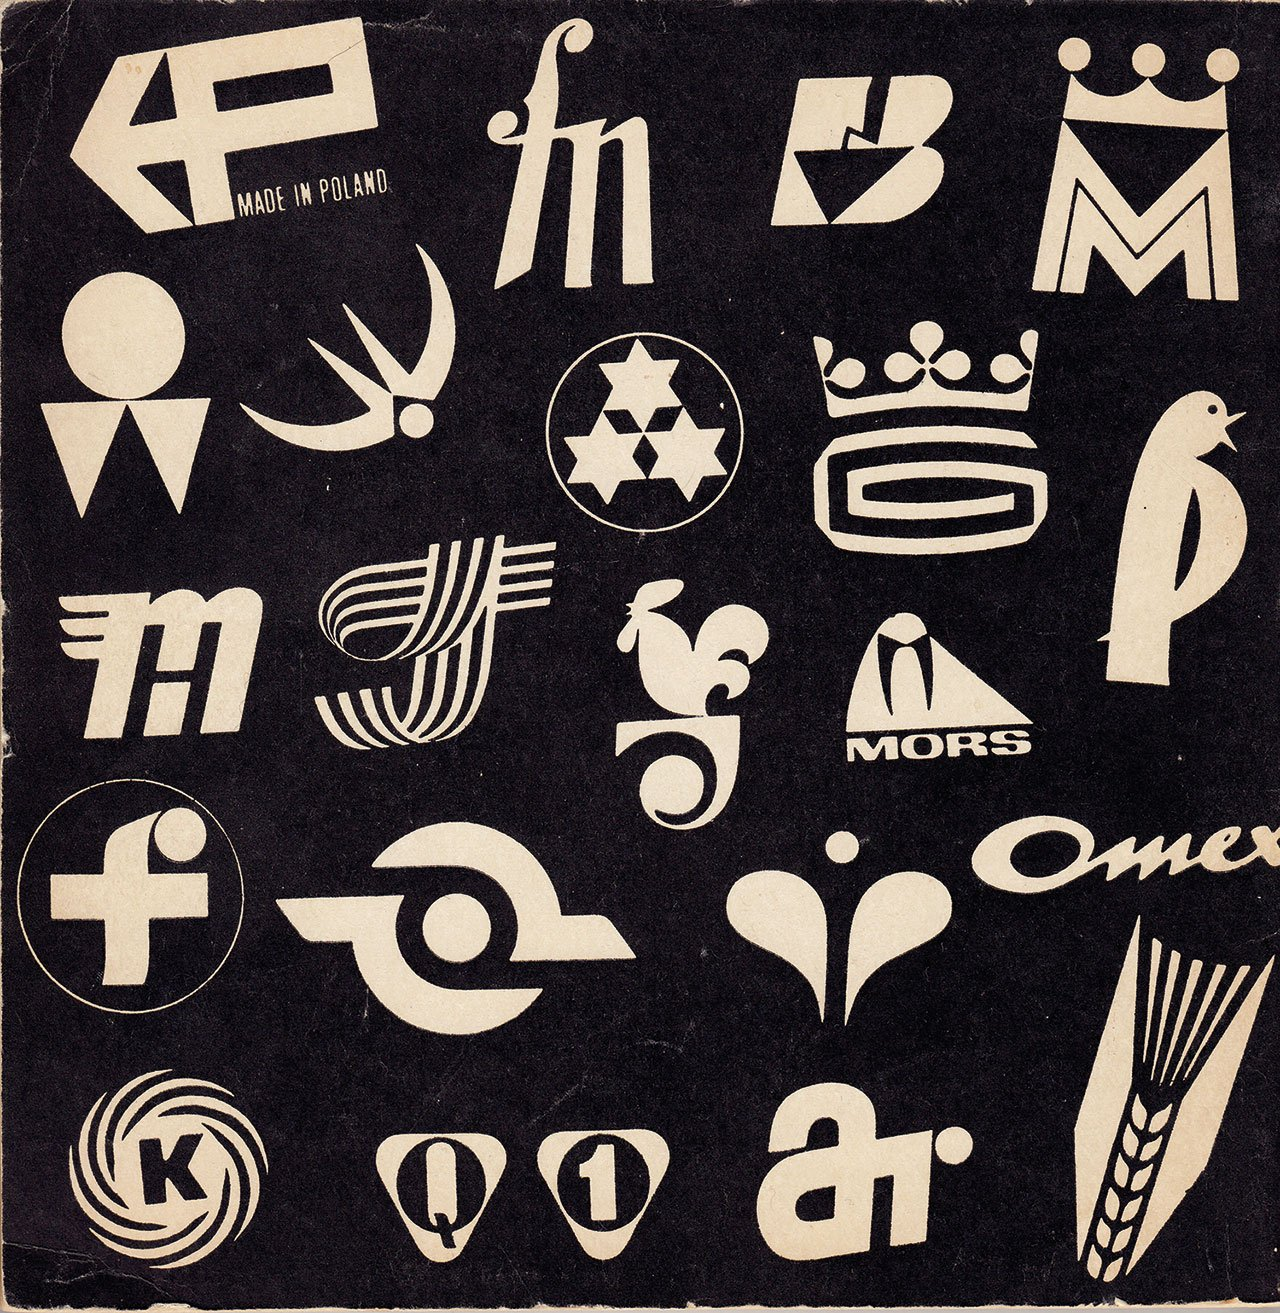 Catalogue of the First Polish Exhibition of Graphic Symbols, 1969. Courtesy Museum of Modern Art in Warsaw.